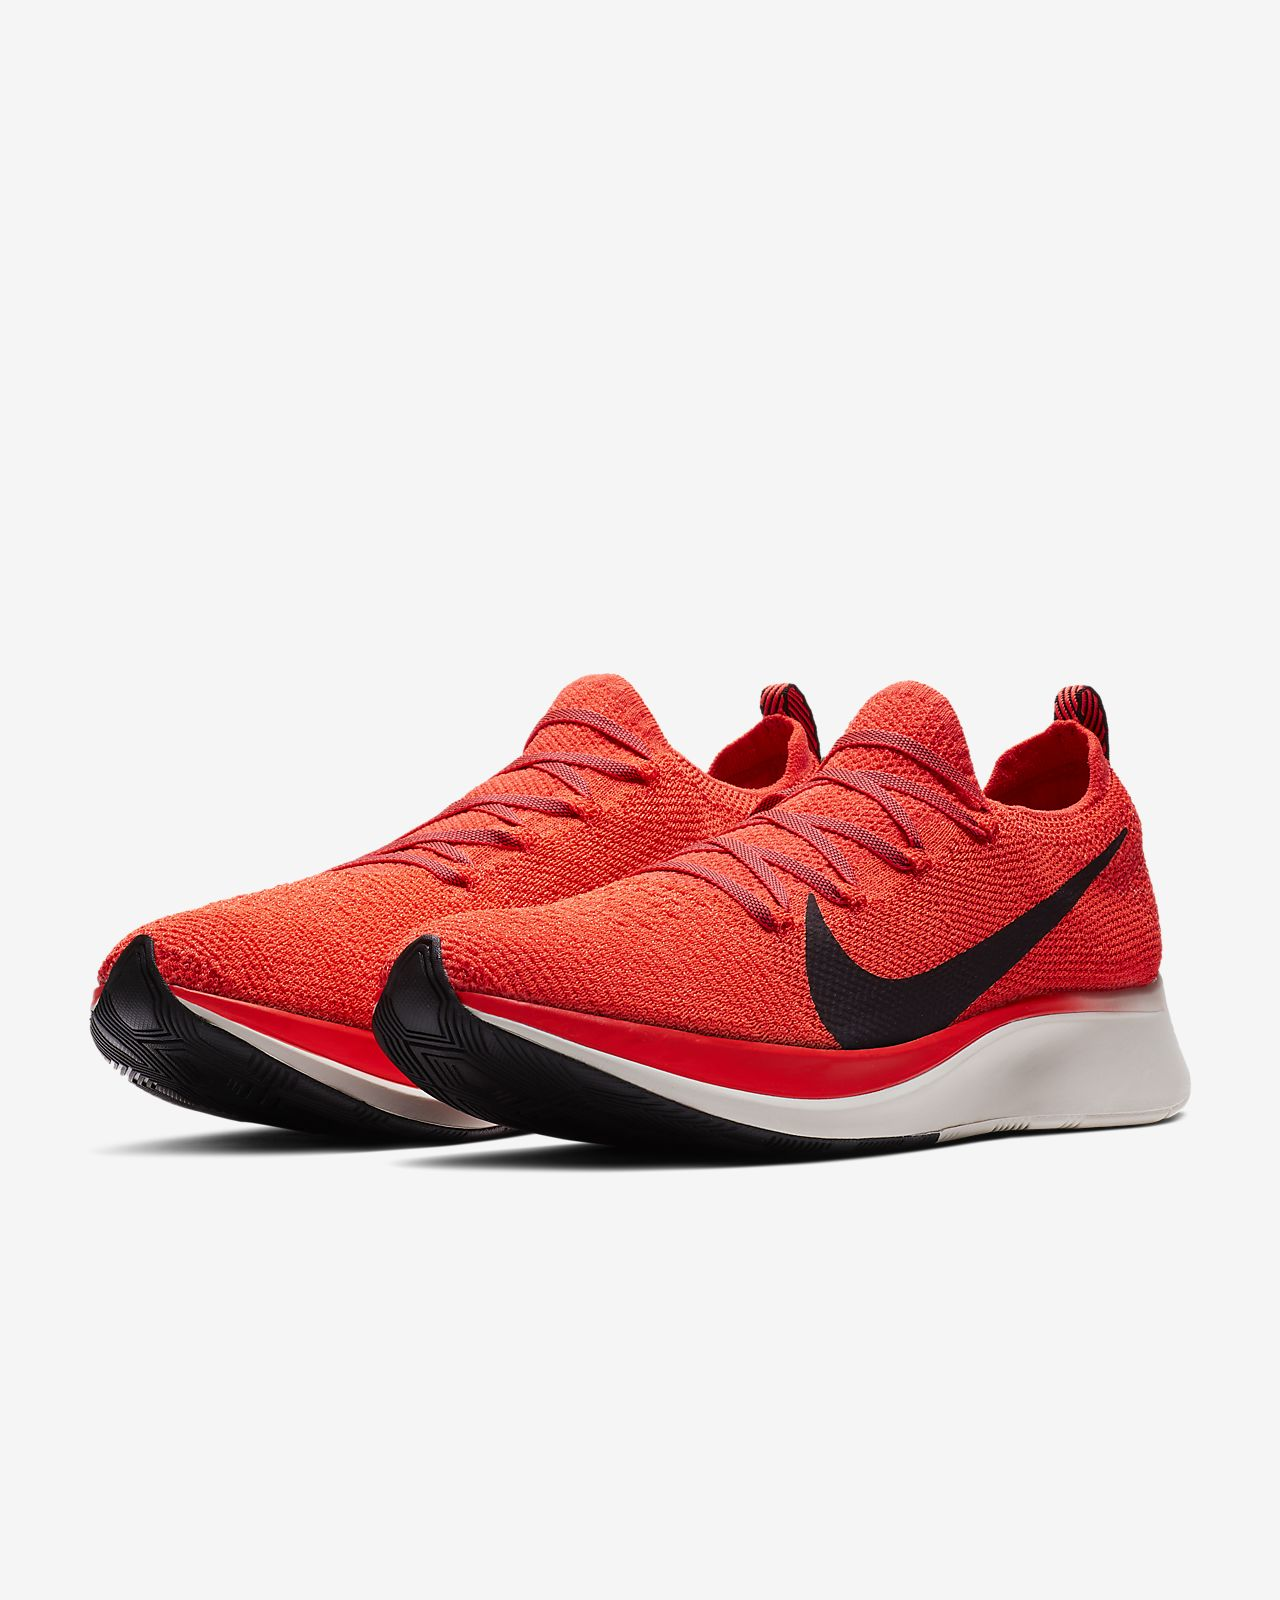 sneakers for cheap d665e a92eb Low Resolution Nike Zoom Fly Flyknit Men s Running Shoe Nike Zoom Fly  Flyknit Men s Running Shoe